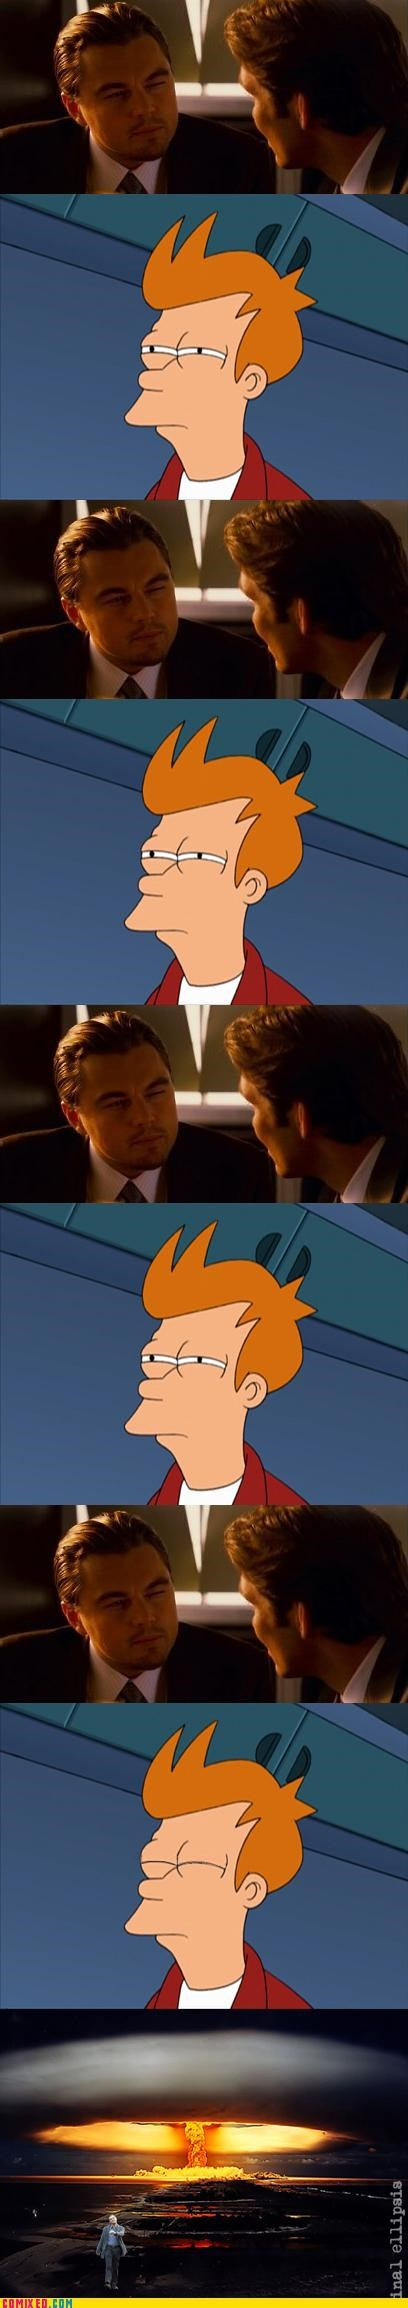 fry,Inception,leonardo dicaprio,Staring,TV